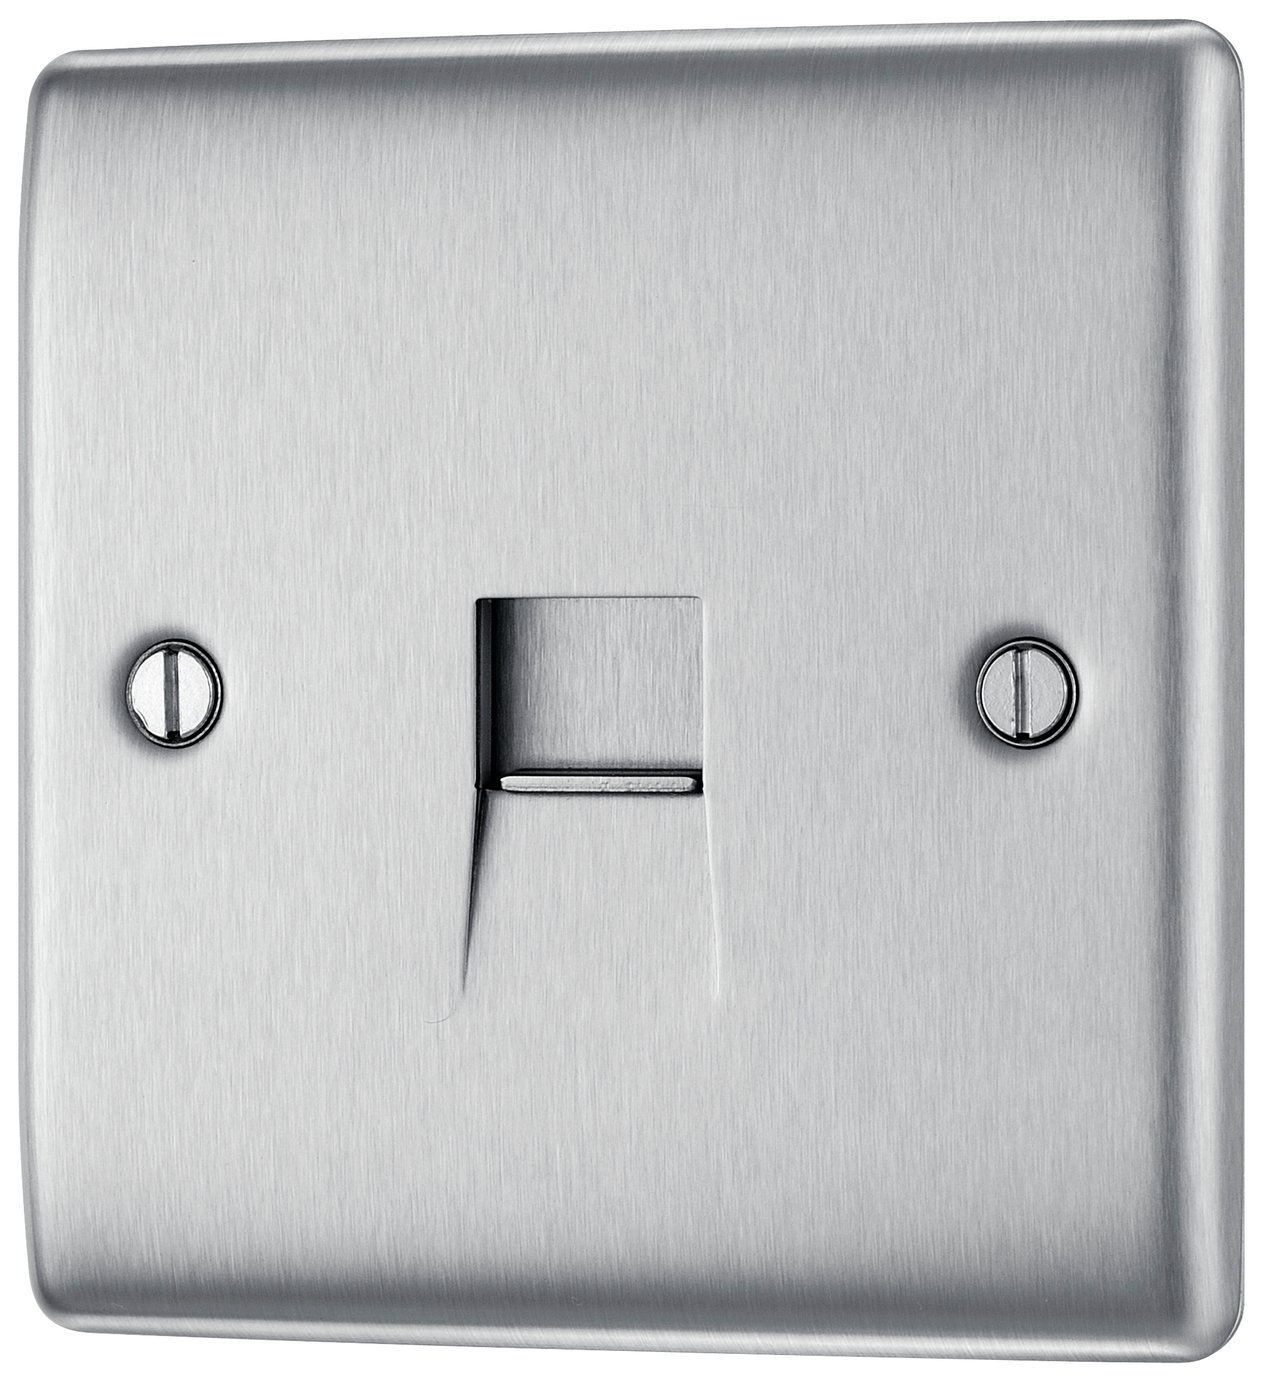 BG Telephone Raised Socket - Brushed Stainless Steel